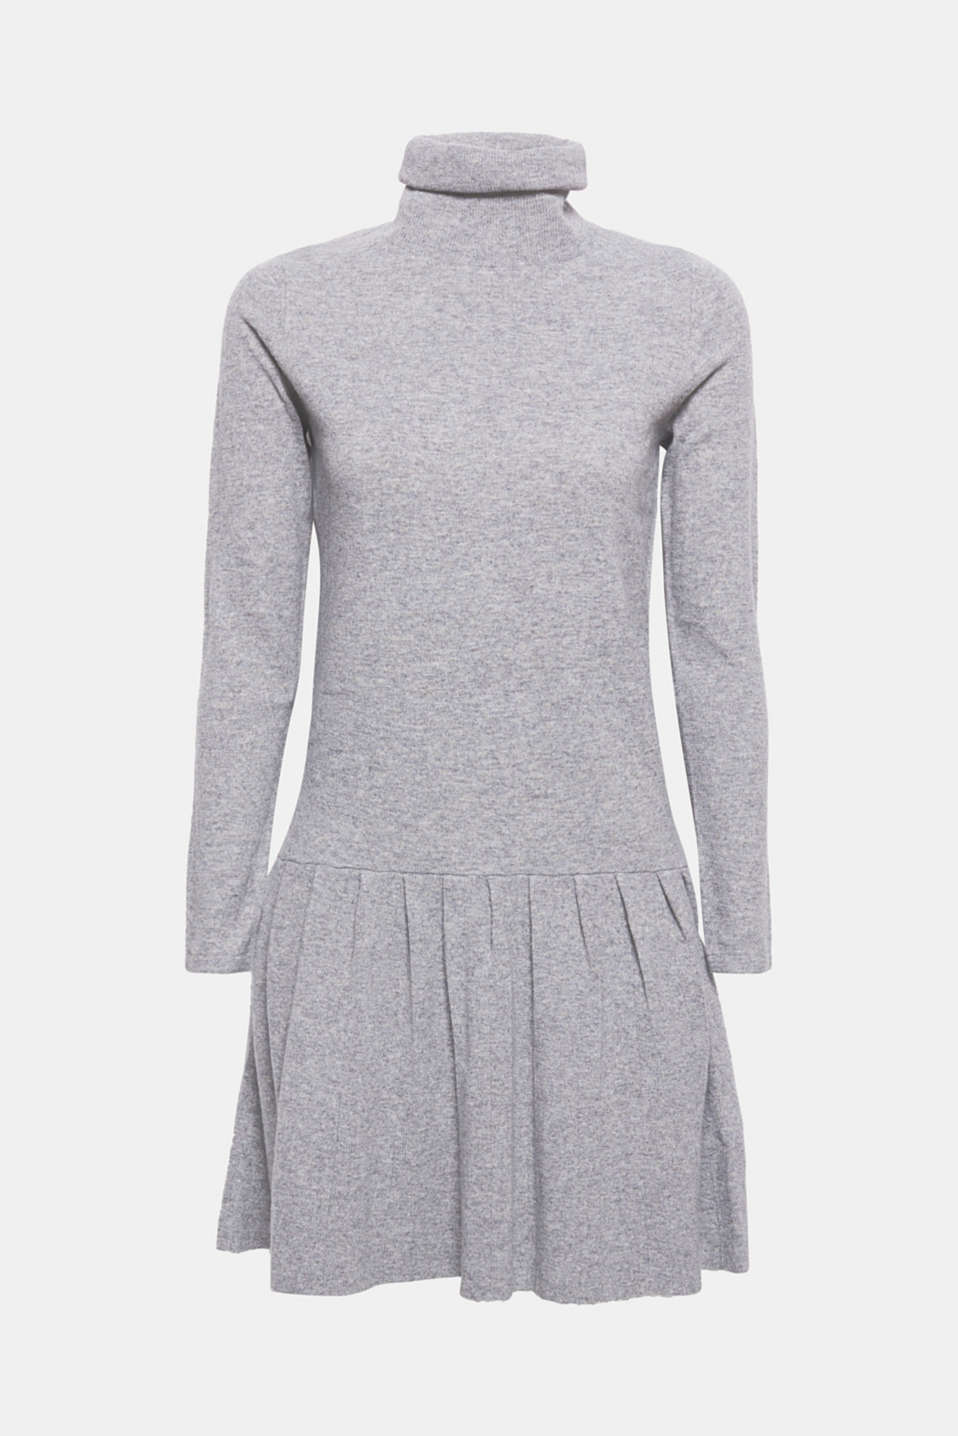 This soft knitted dress with a polo neck and flared flounce hem presents a trendy new silhouette